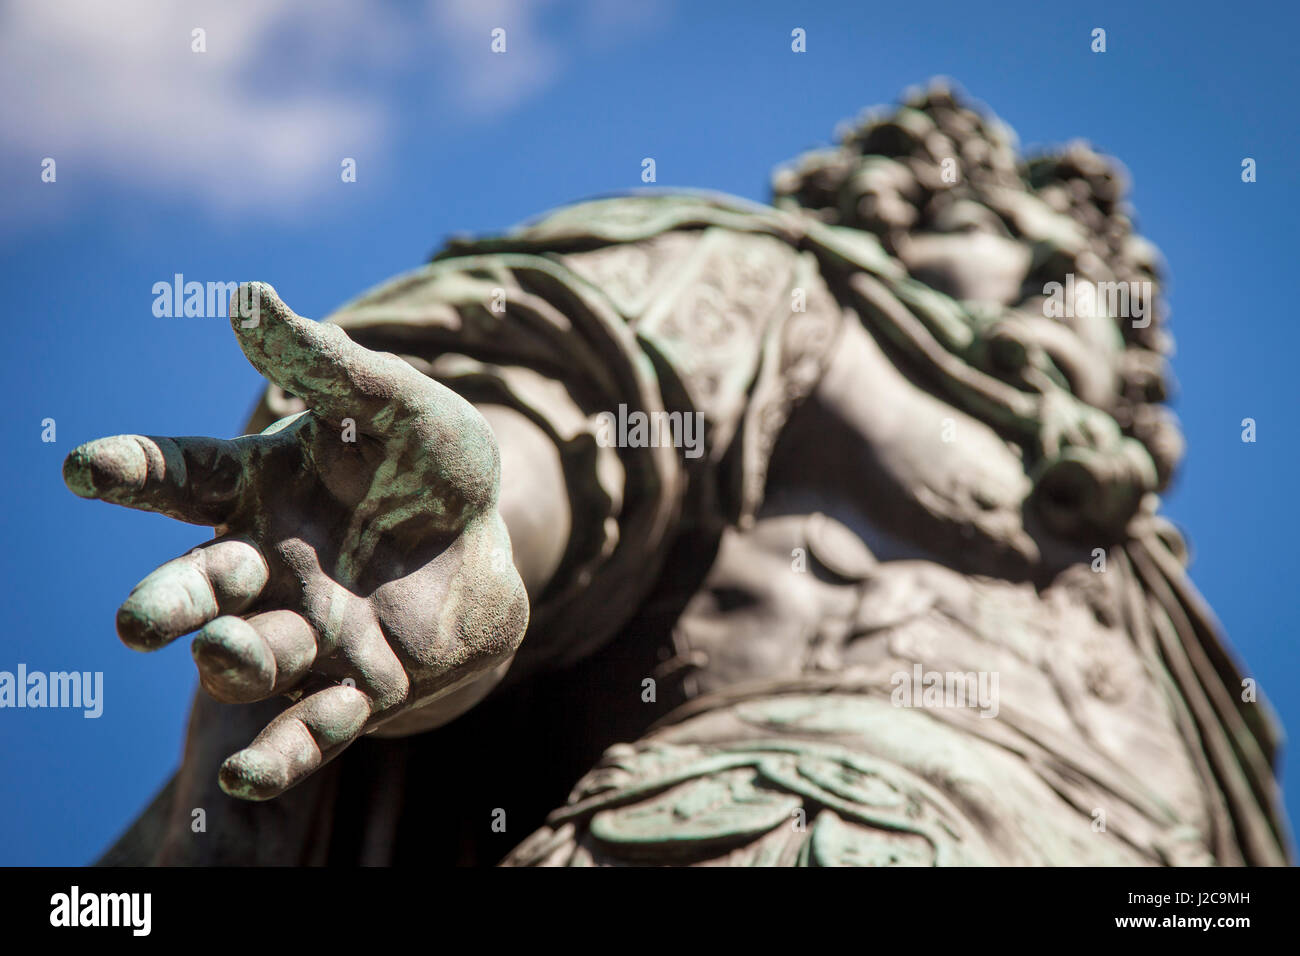 Hand detail on bronze statue of King Louis XIV in Musee Carnavalet, Marais, Paris, France - Stock Image